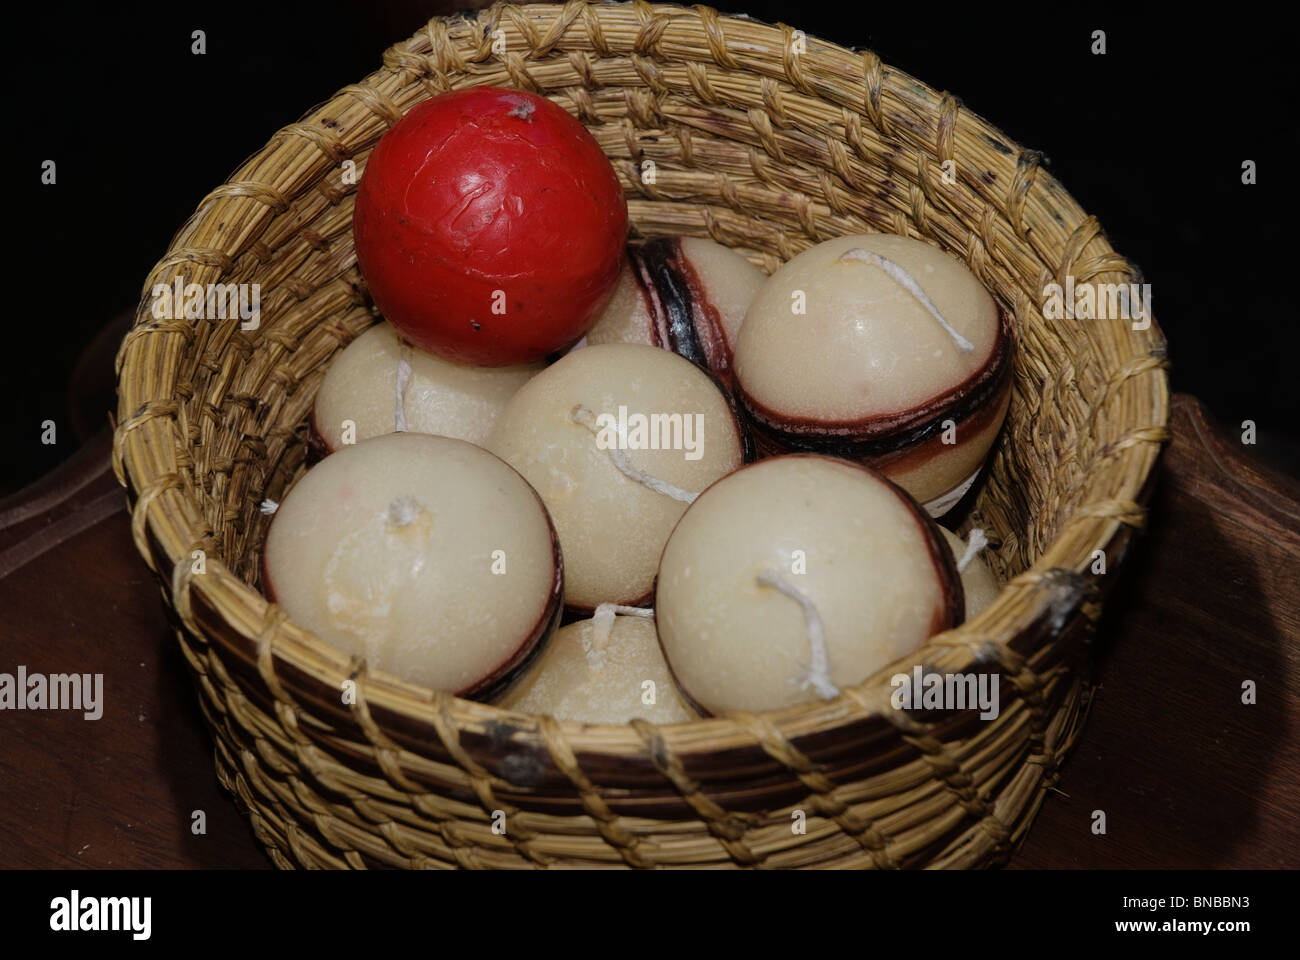 High angle close-up basket of candles, one red among many white. - Stock Image